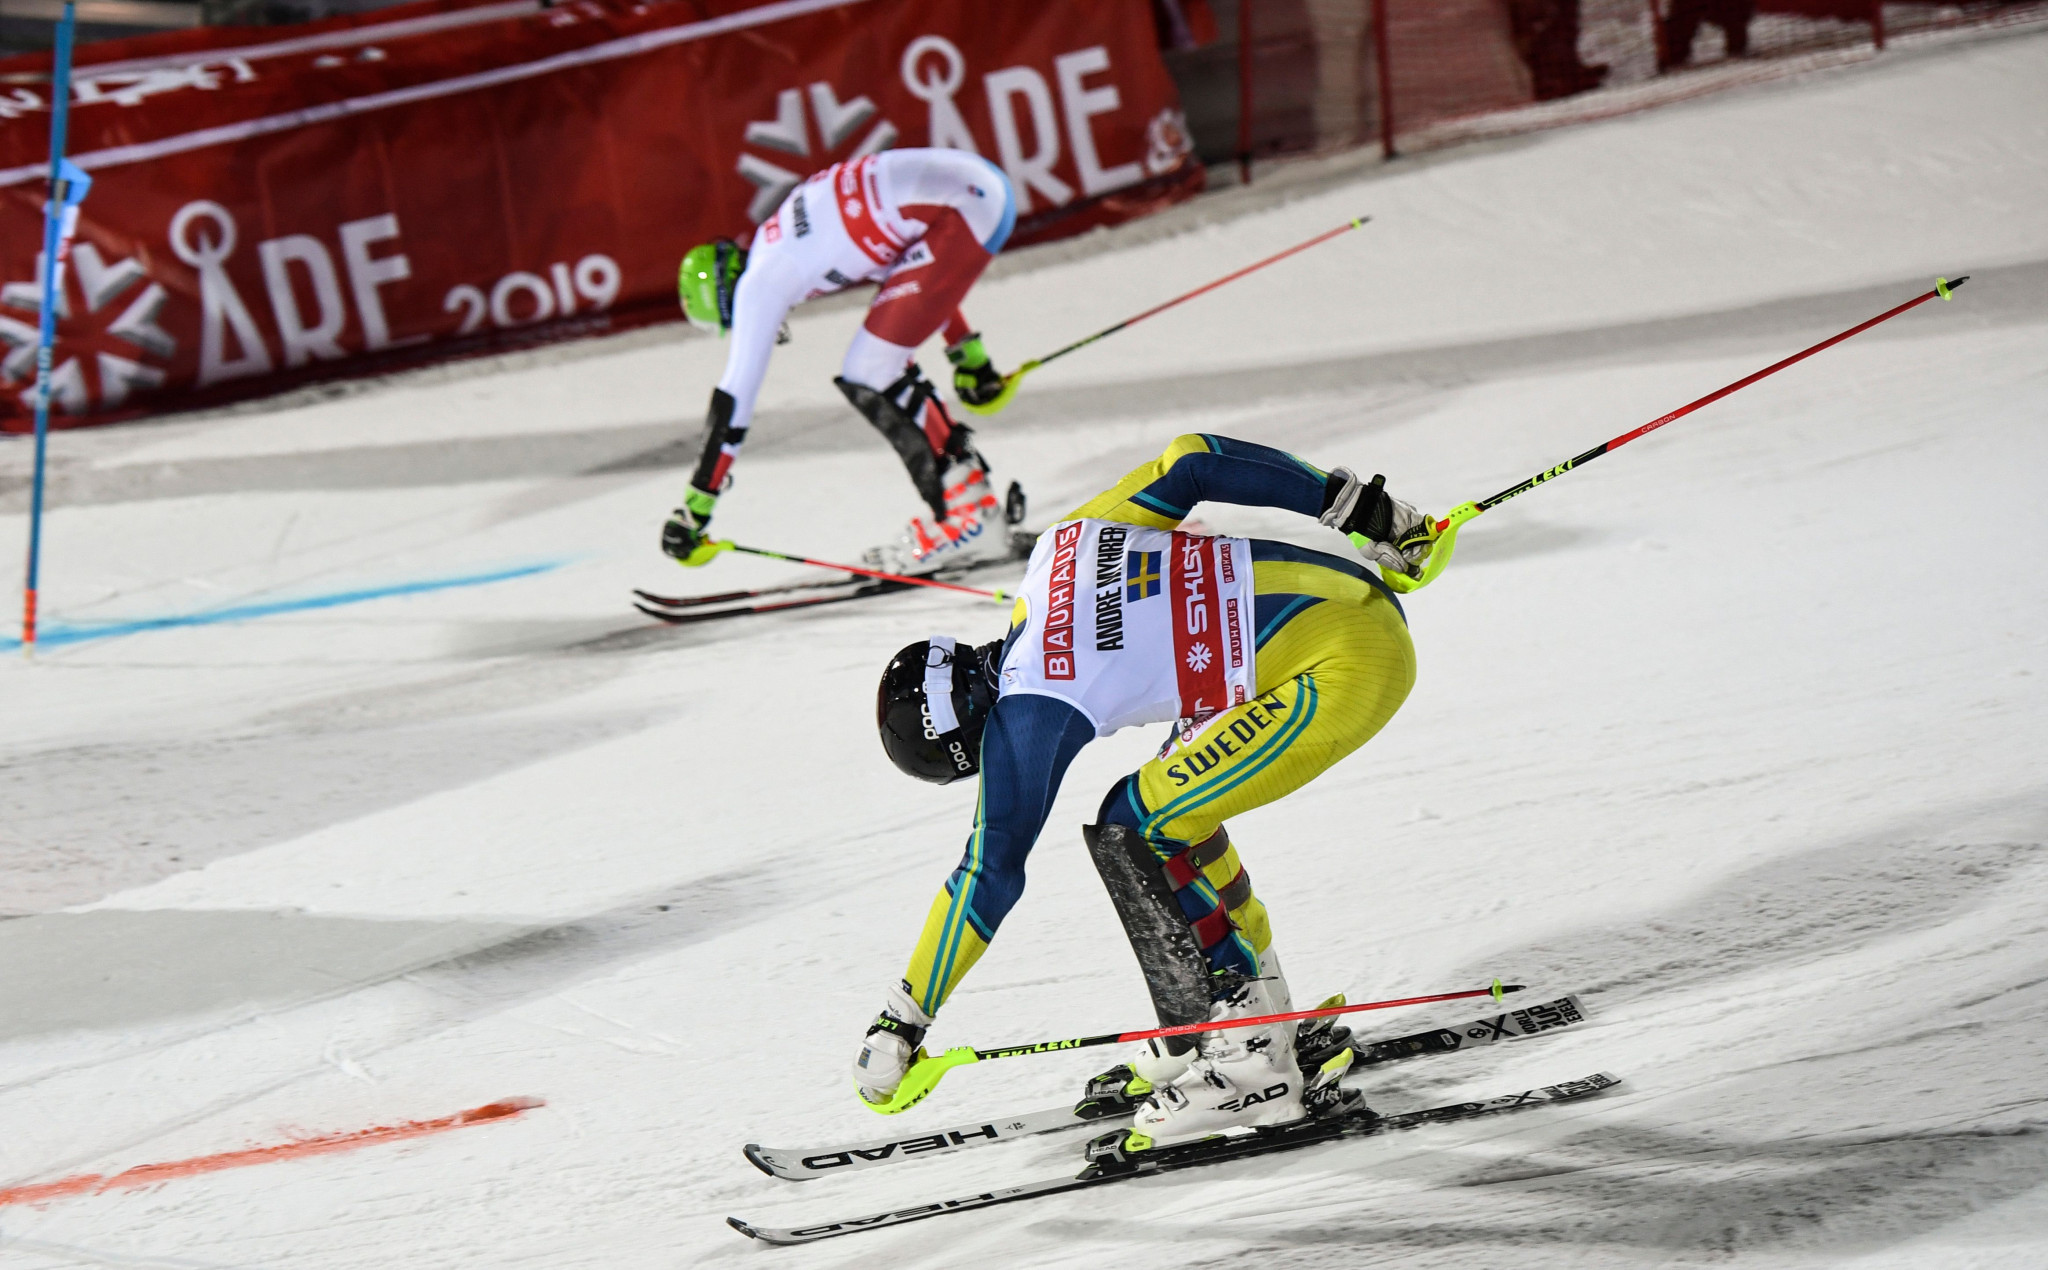 A new World Cup event for parallel Alpine skiing will be added from 2020-2021 ©FIS